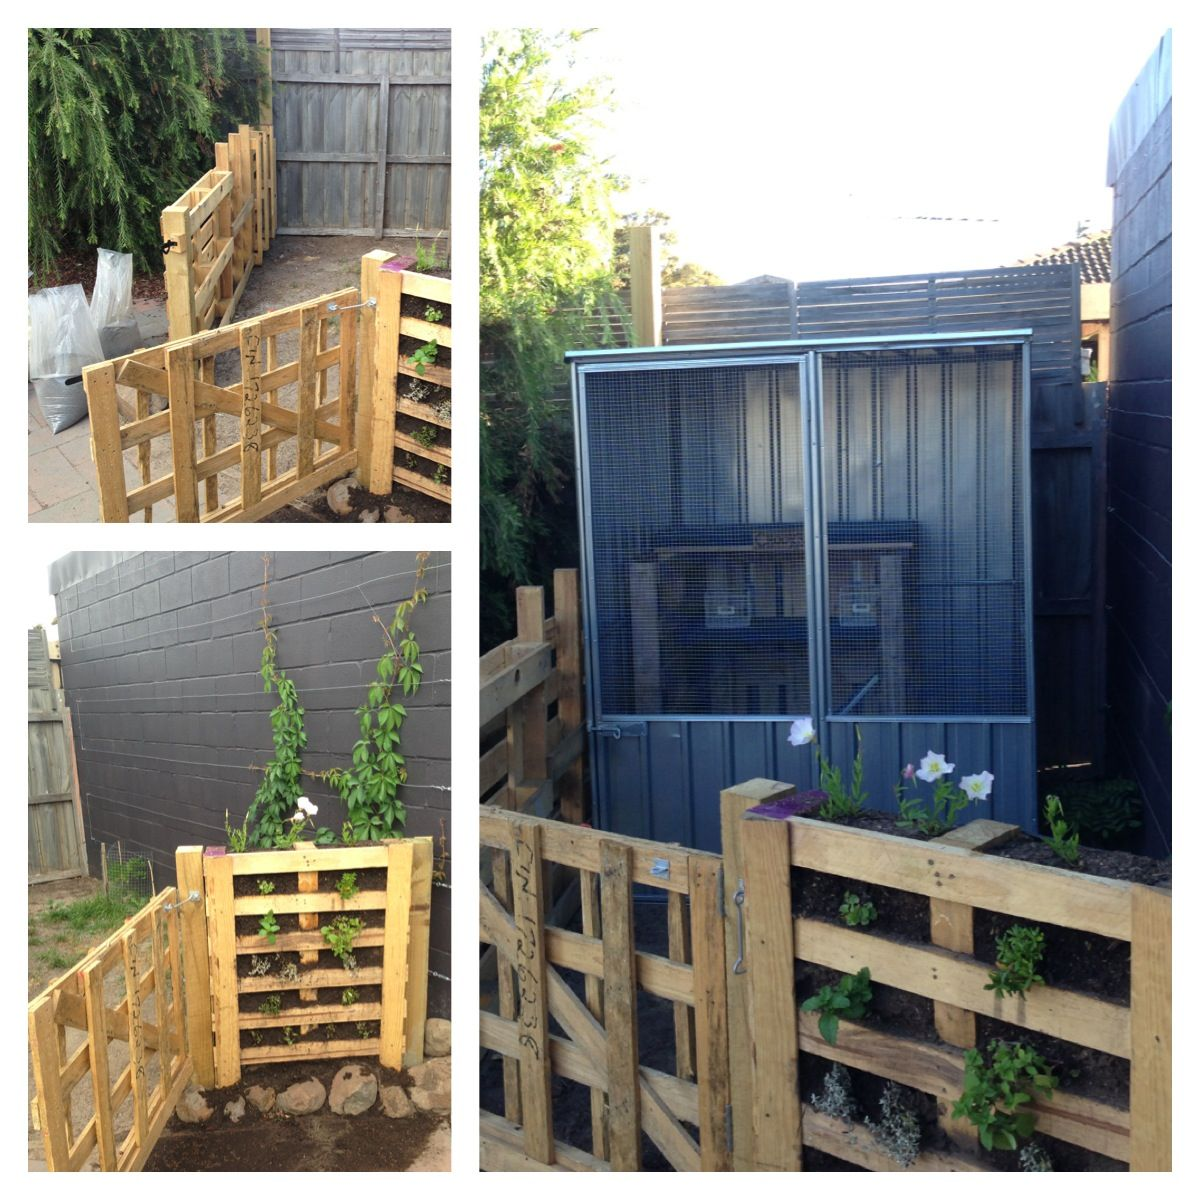 I love to use pallets free recycled materials with no straight